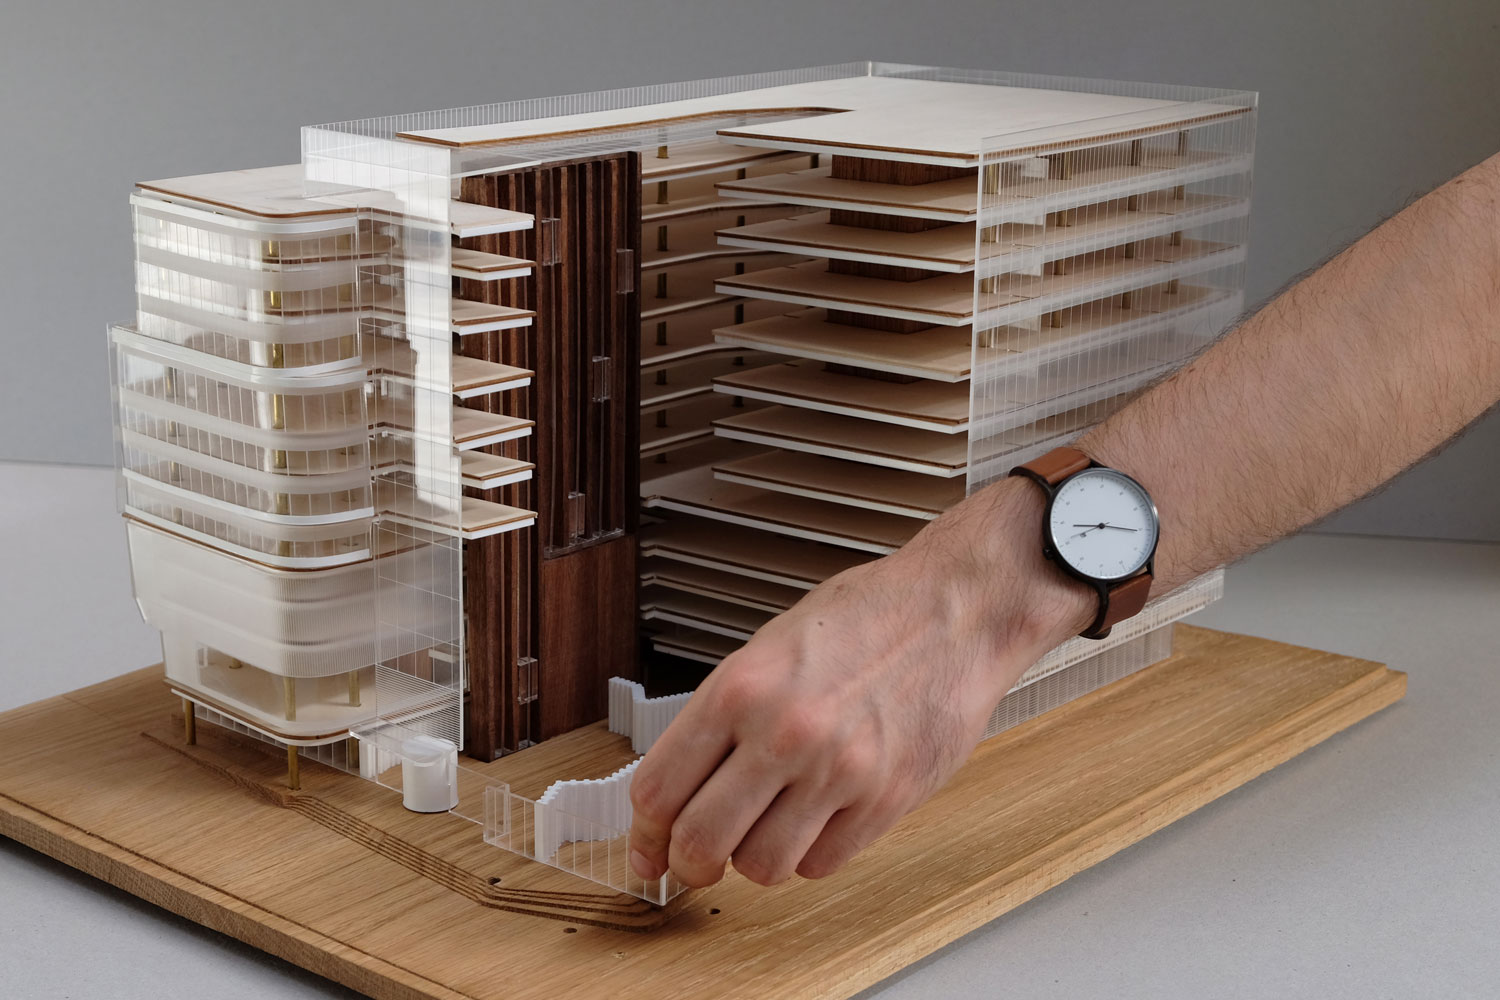 Woods Bagot Commonwealth Bank buildings Make Models | Yellowtrace